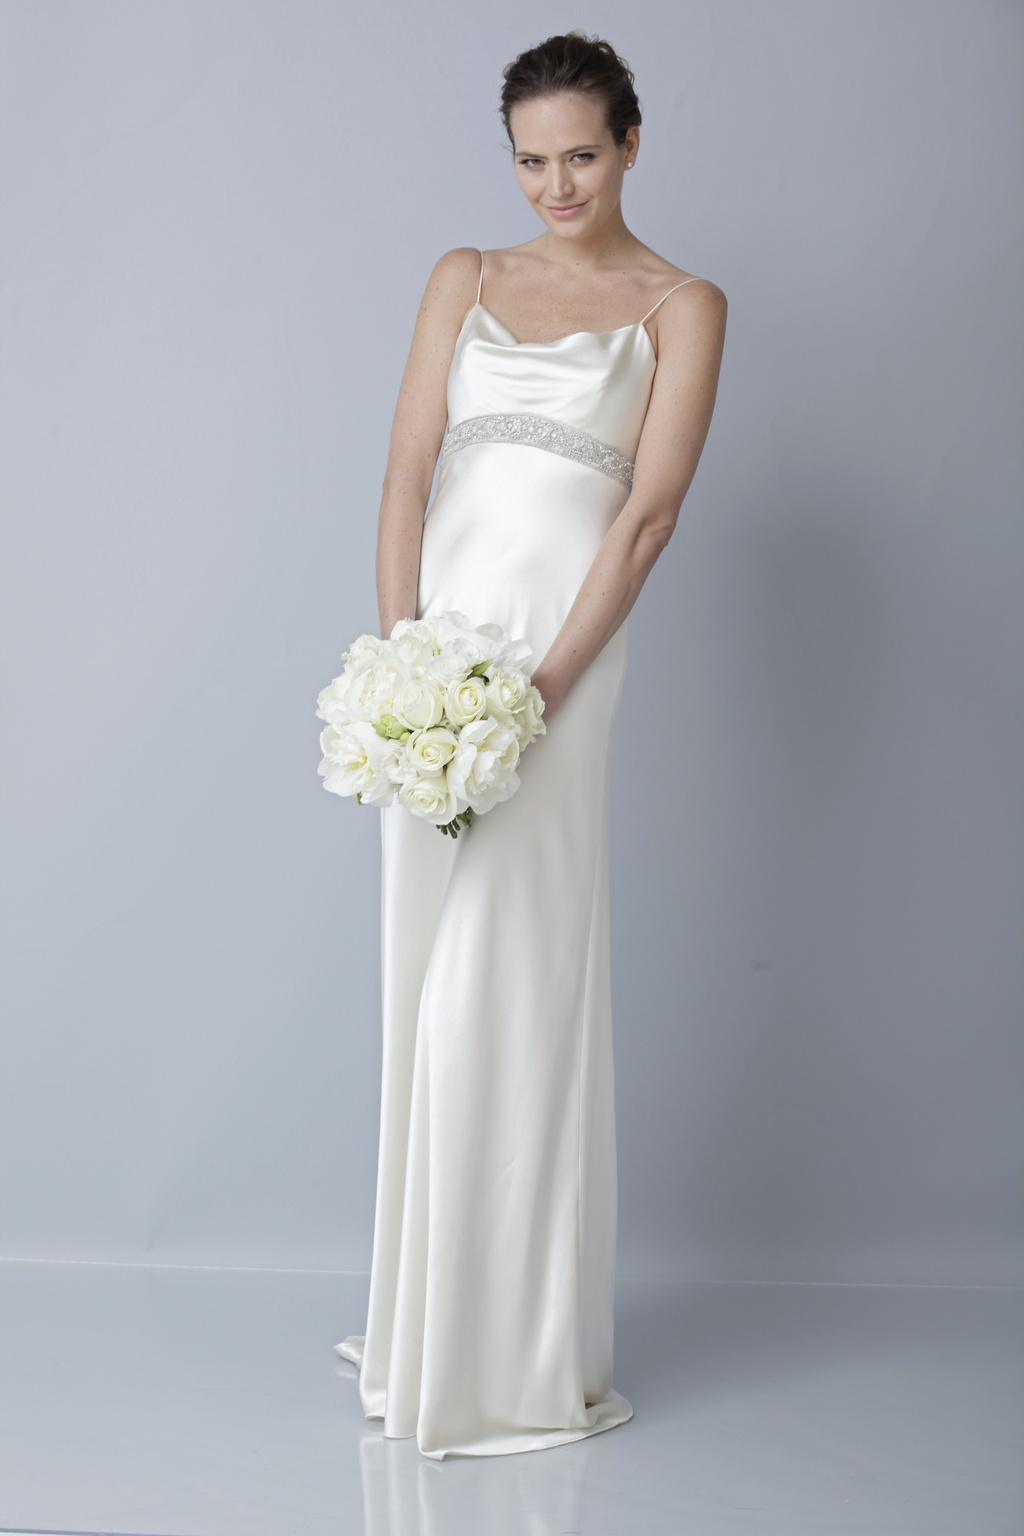 2017 Wedding Dress By Theia Bridal Gowns Slinky Silk